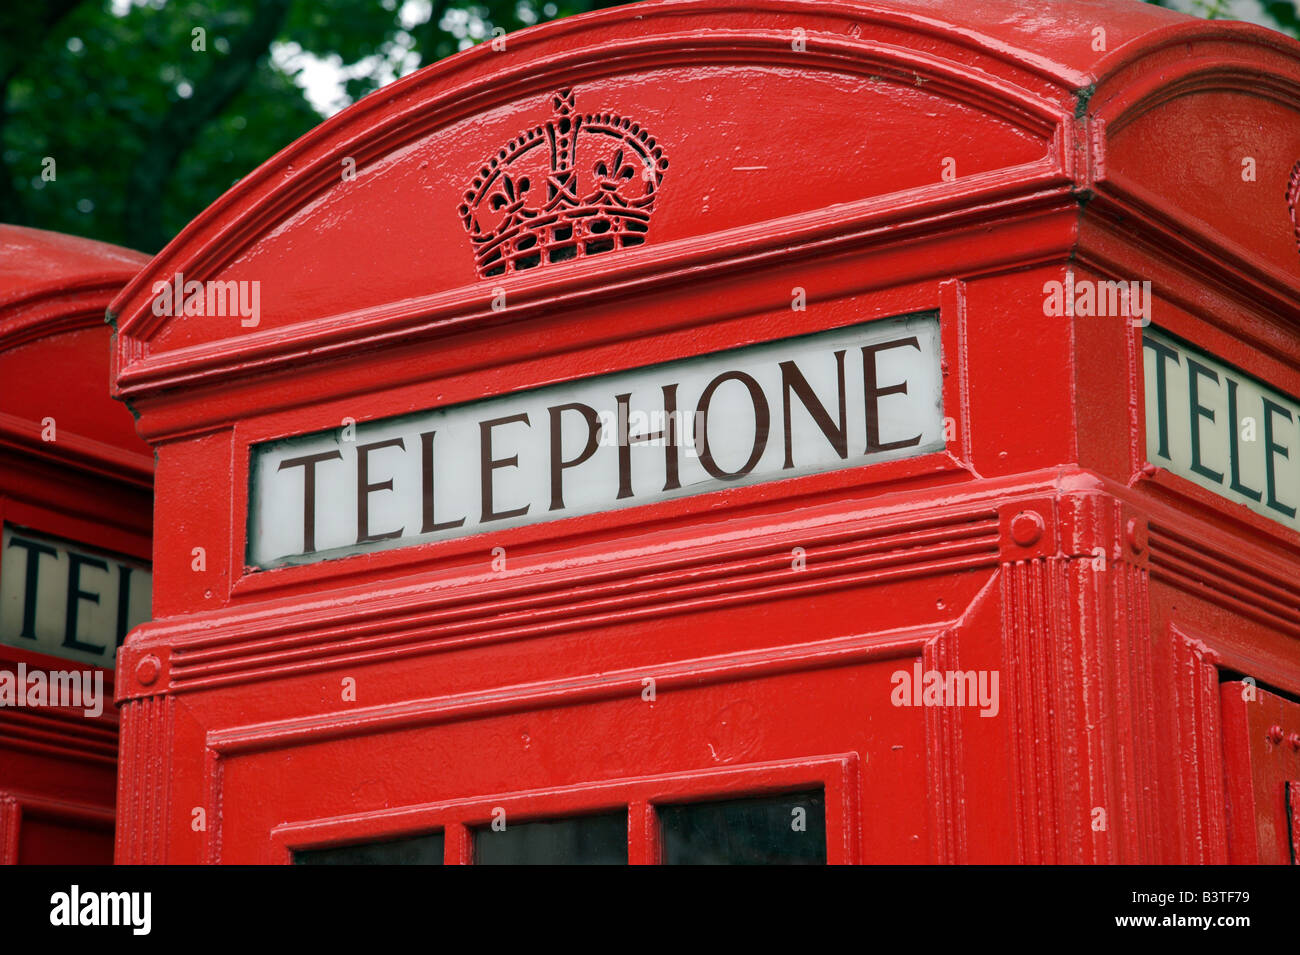 England, London. Britiain's famous red telephone boxes. - Stock Image